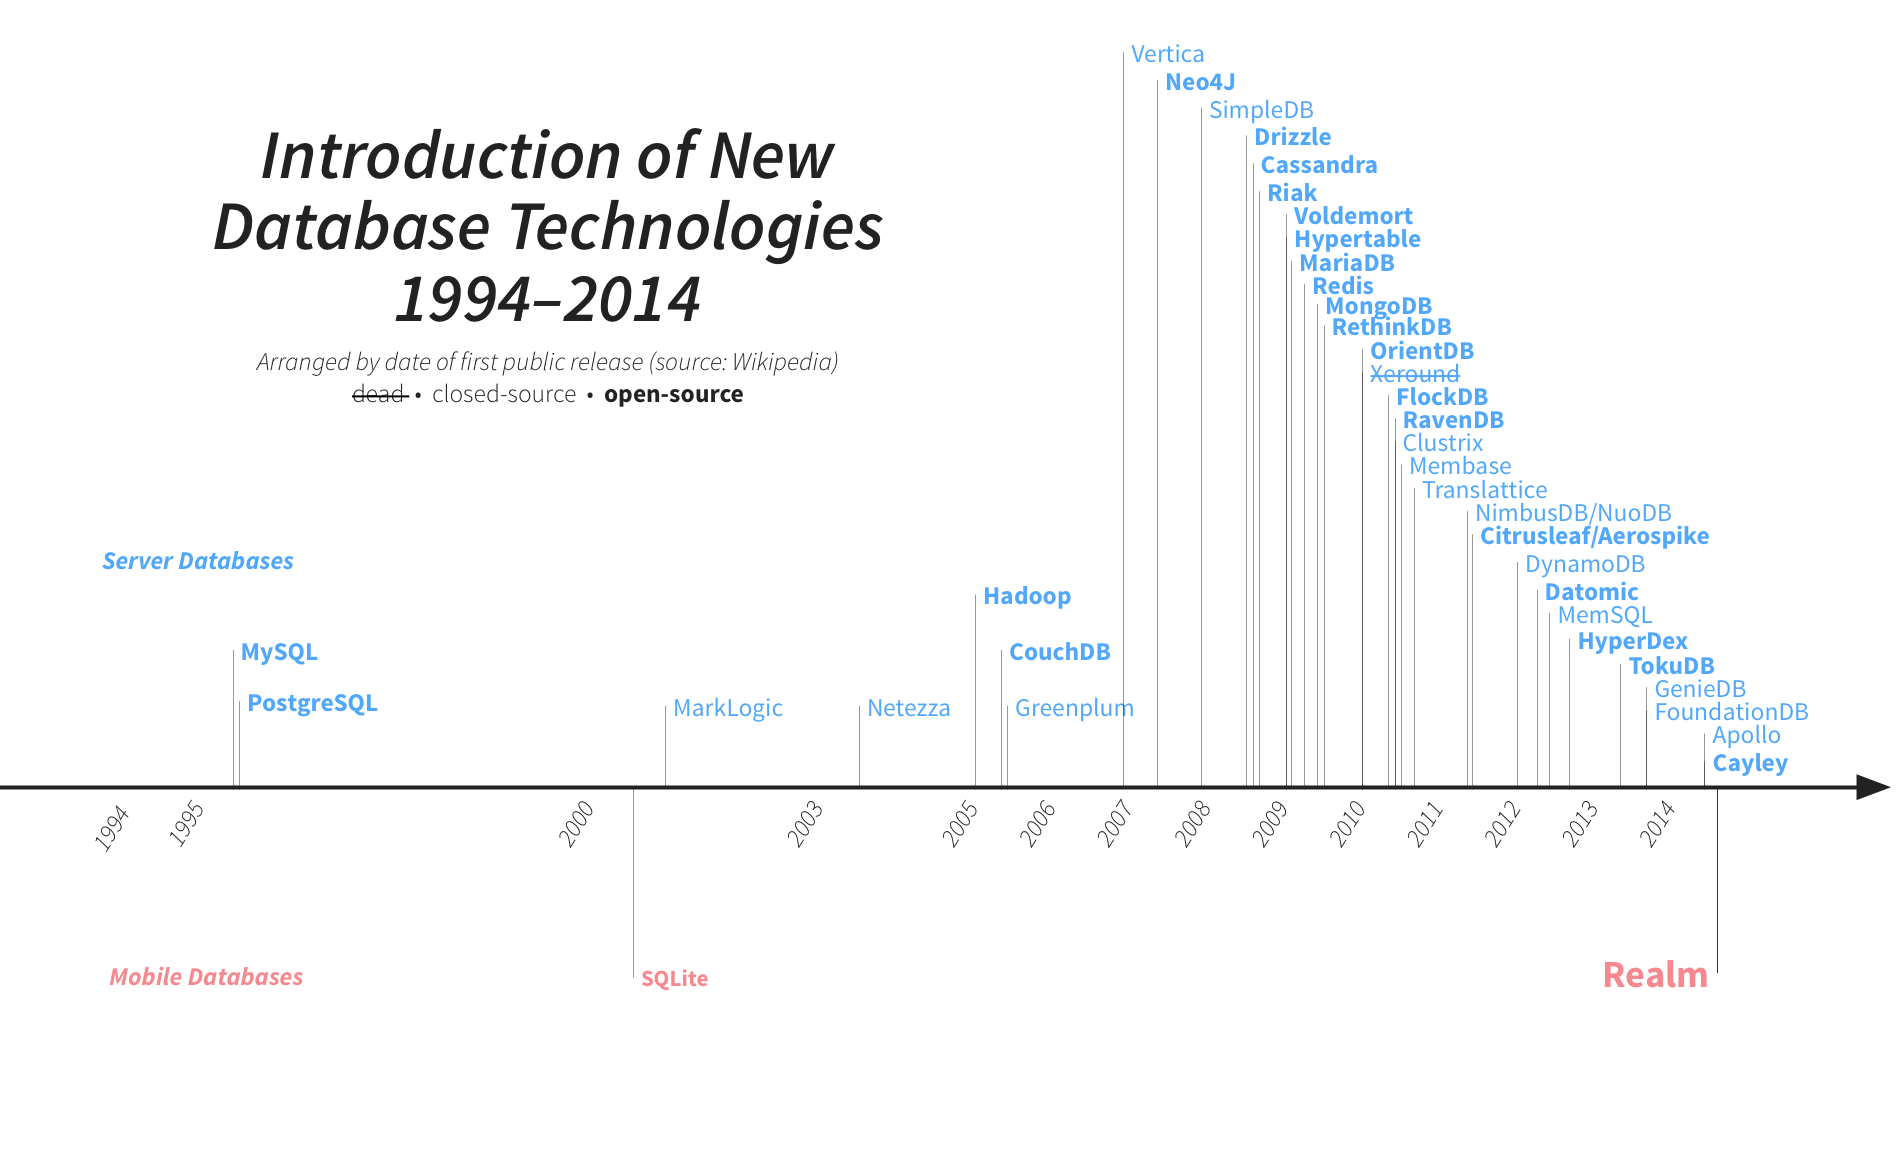 Data base technologies 2000-2014